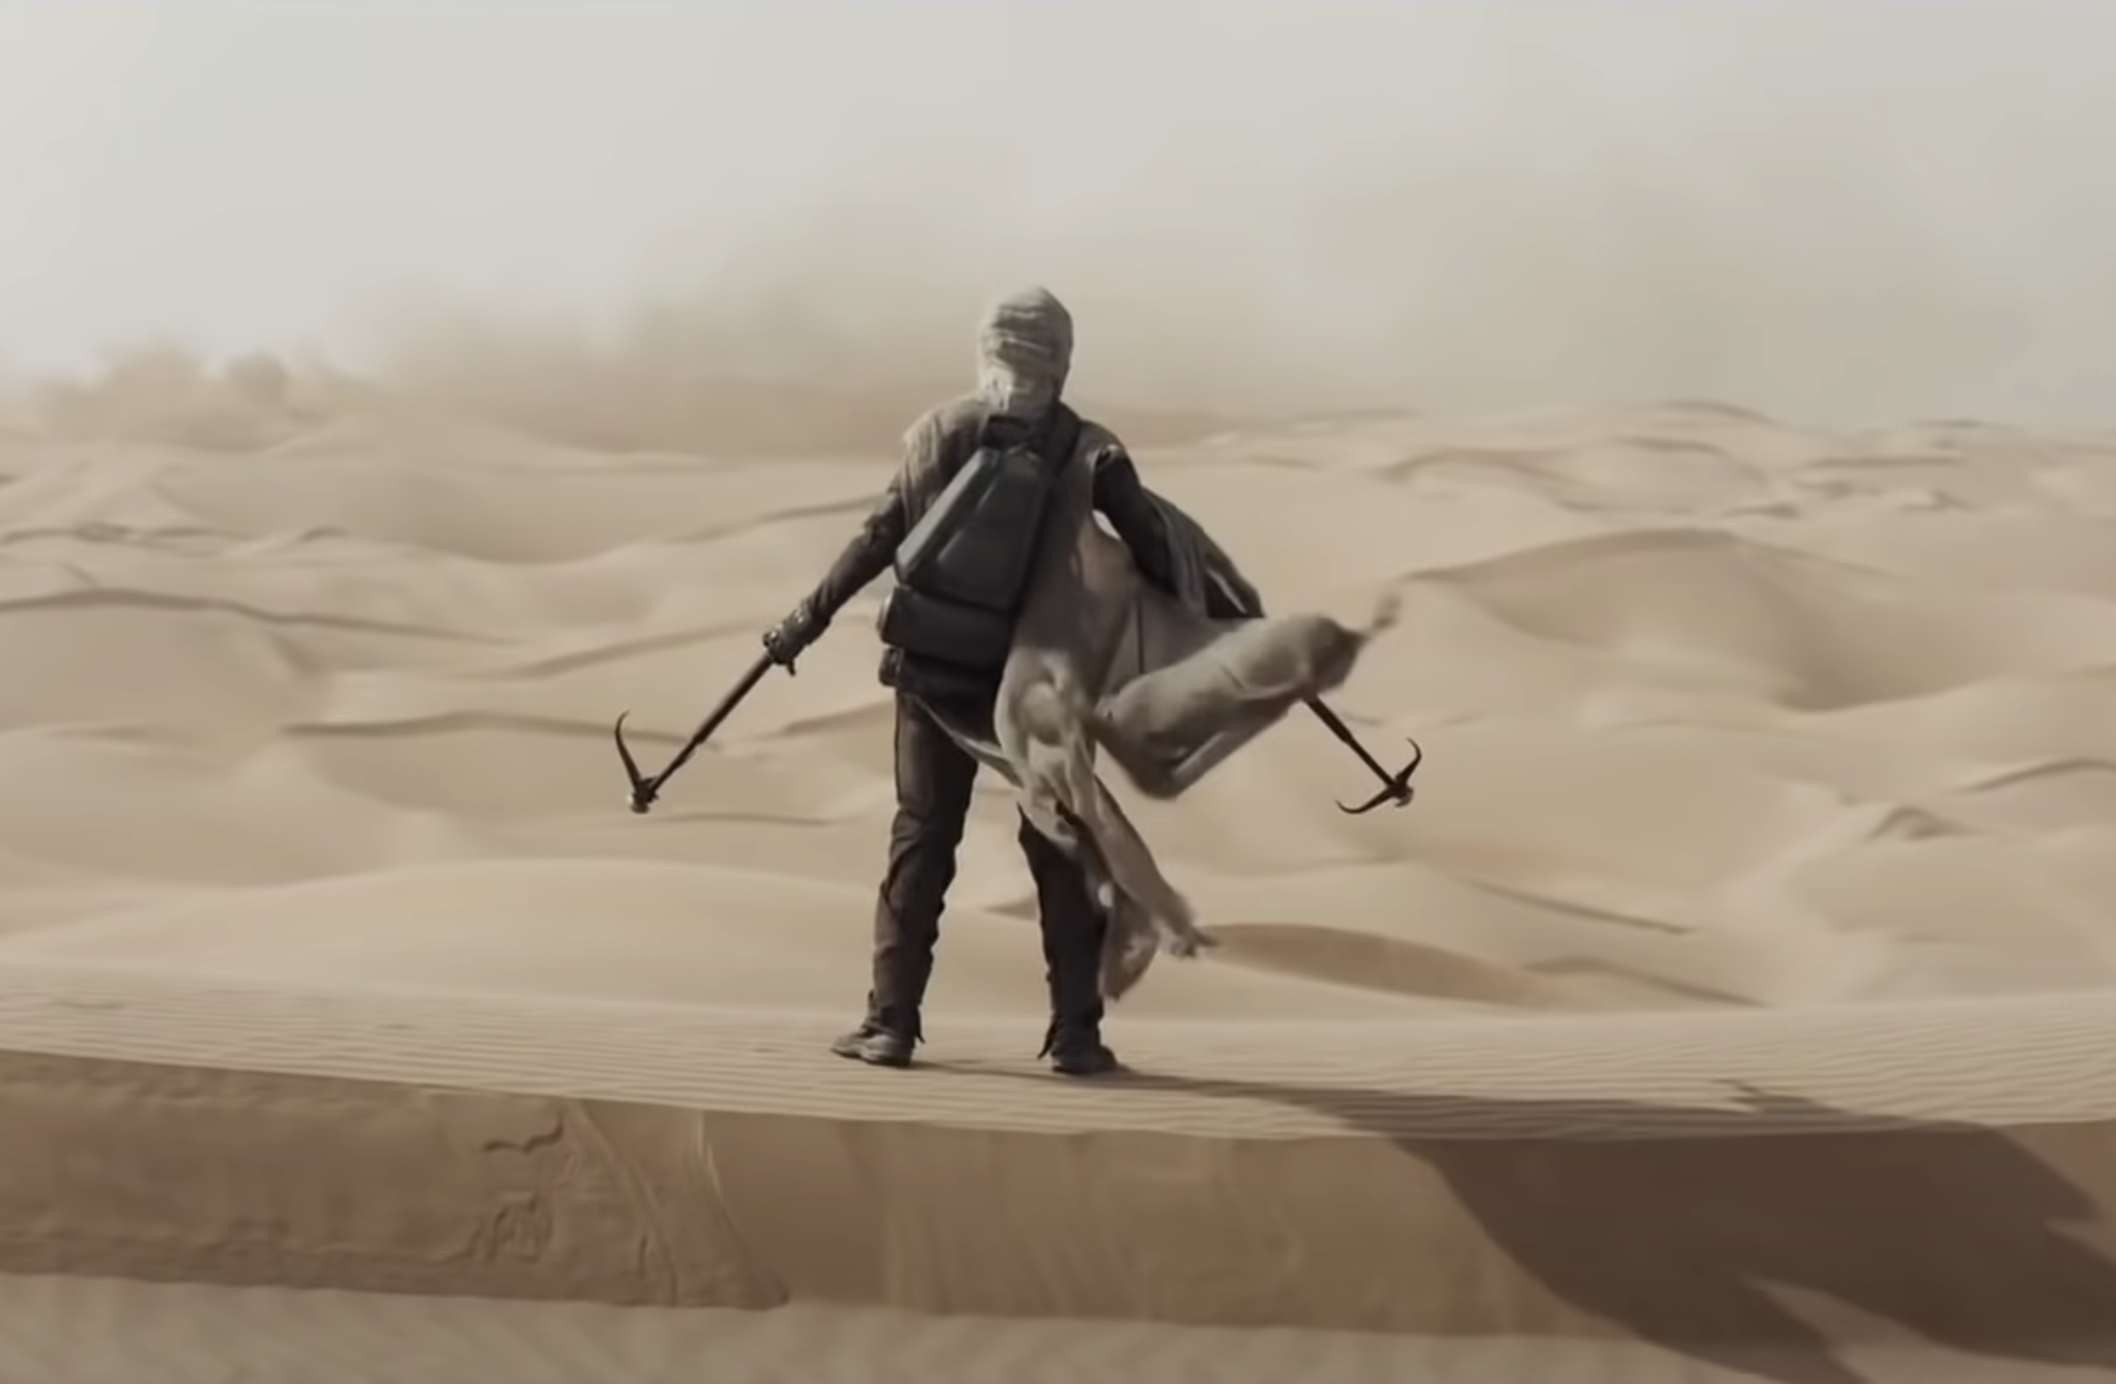 Dune: what Denis Villeneuve changed from the book